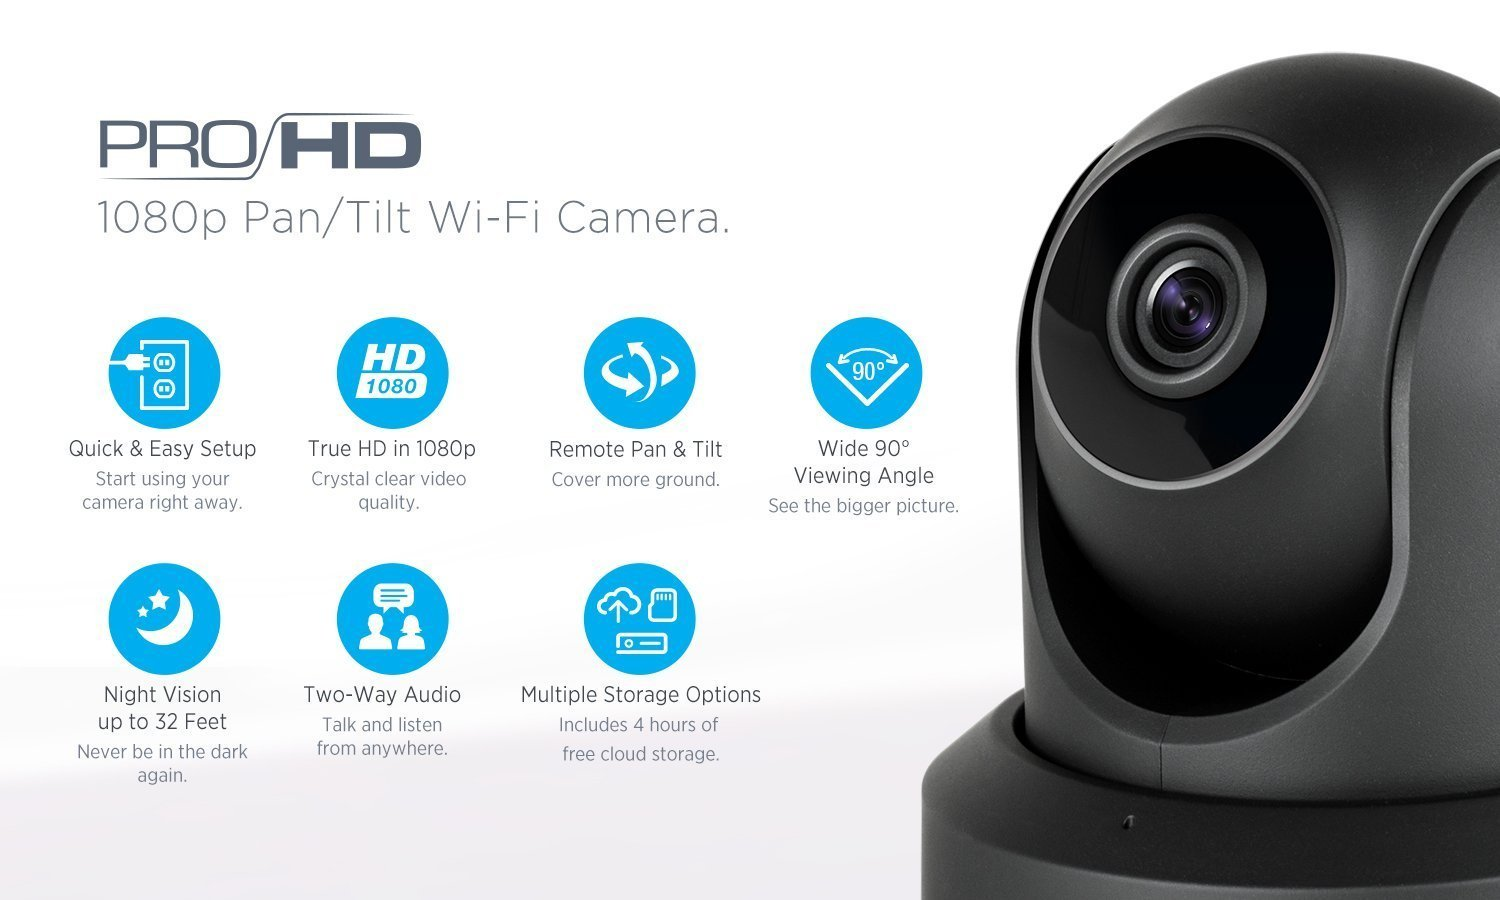 Amcrest ProHD 1080P WiFi Camera 2MP (1920TVL) Indoor Pan/Tilt Security Wireless IP Camera IP2M-841B (Black) by Amcrest (Image #2)